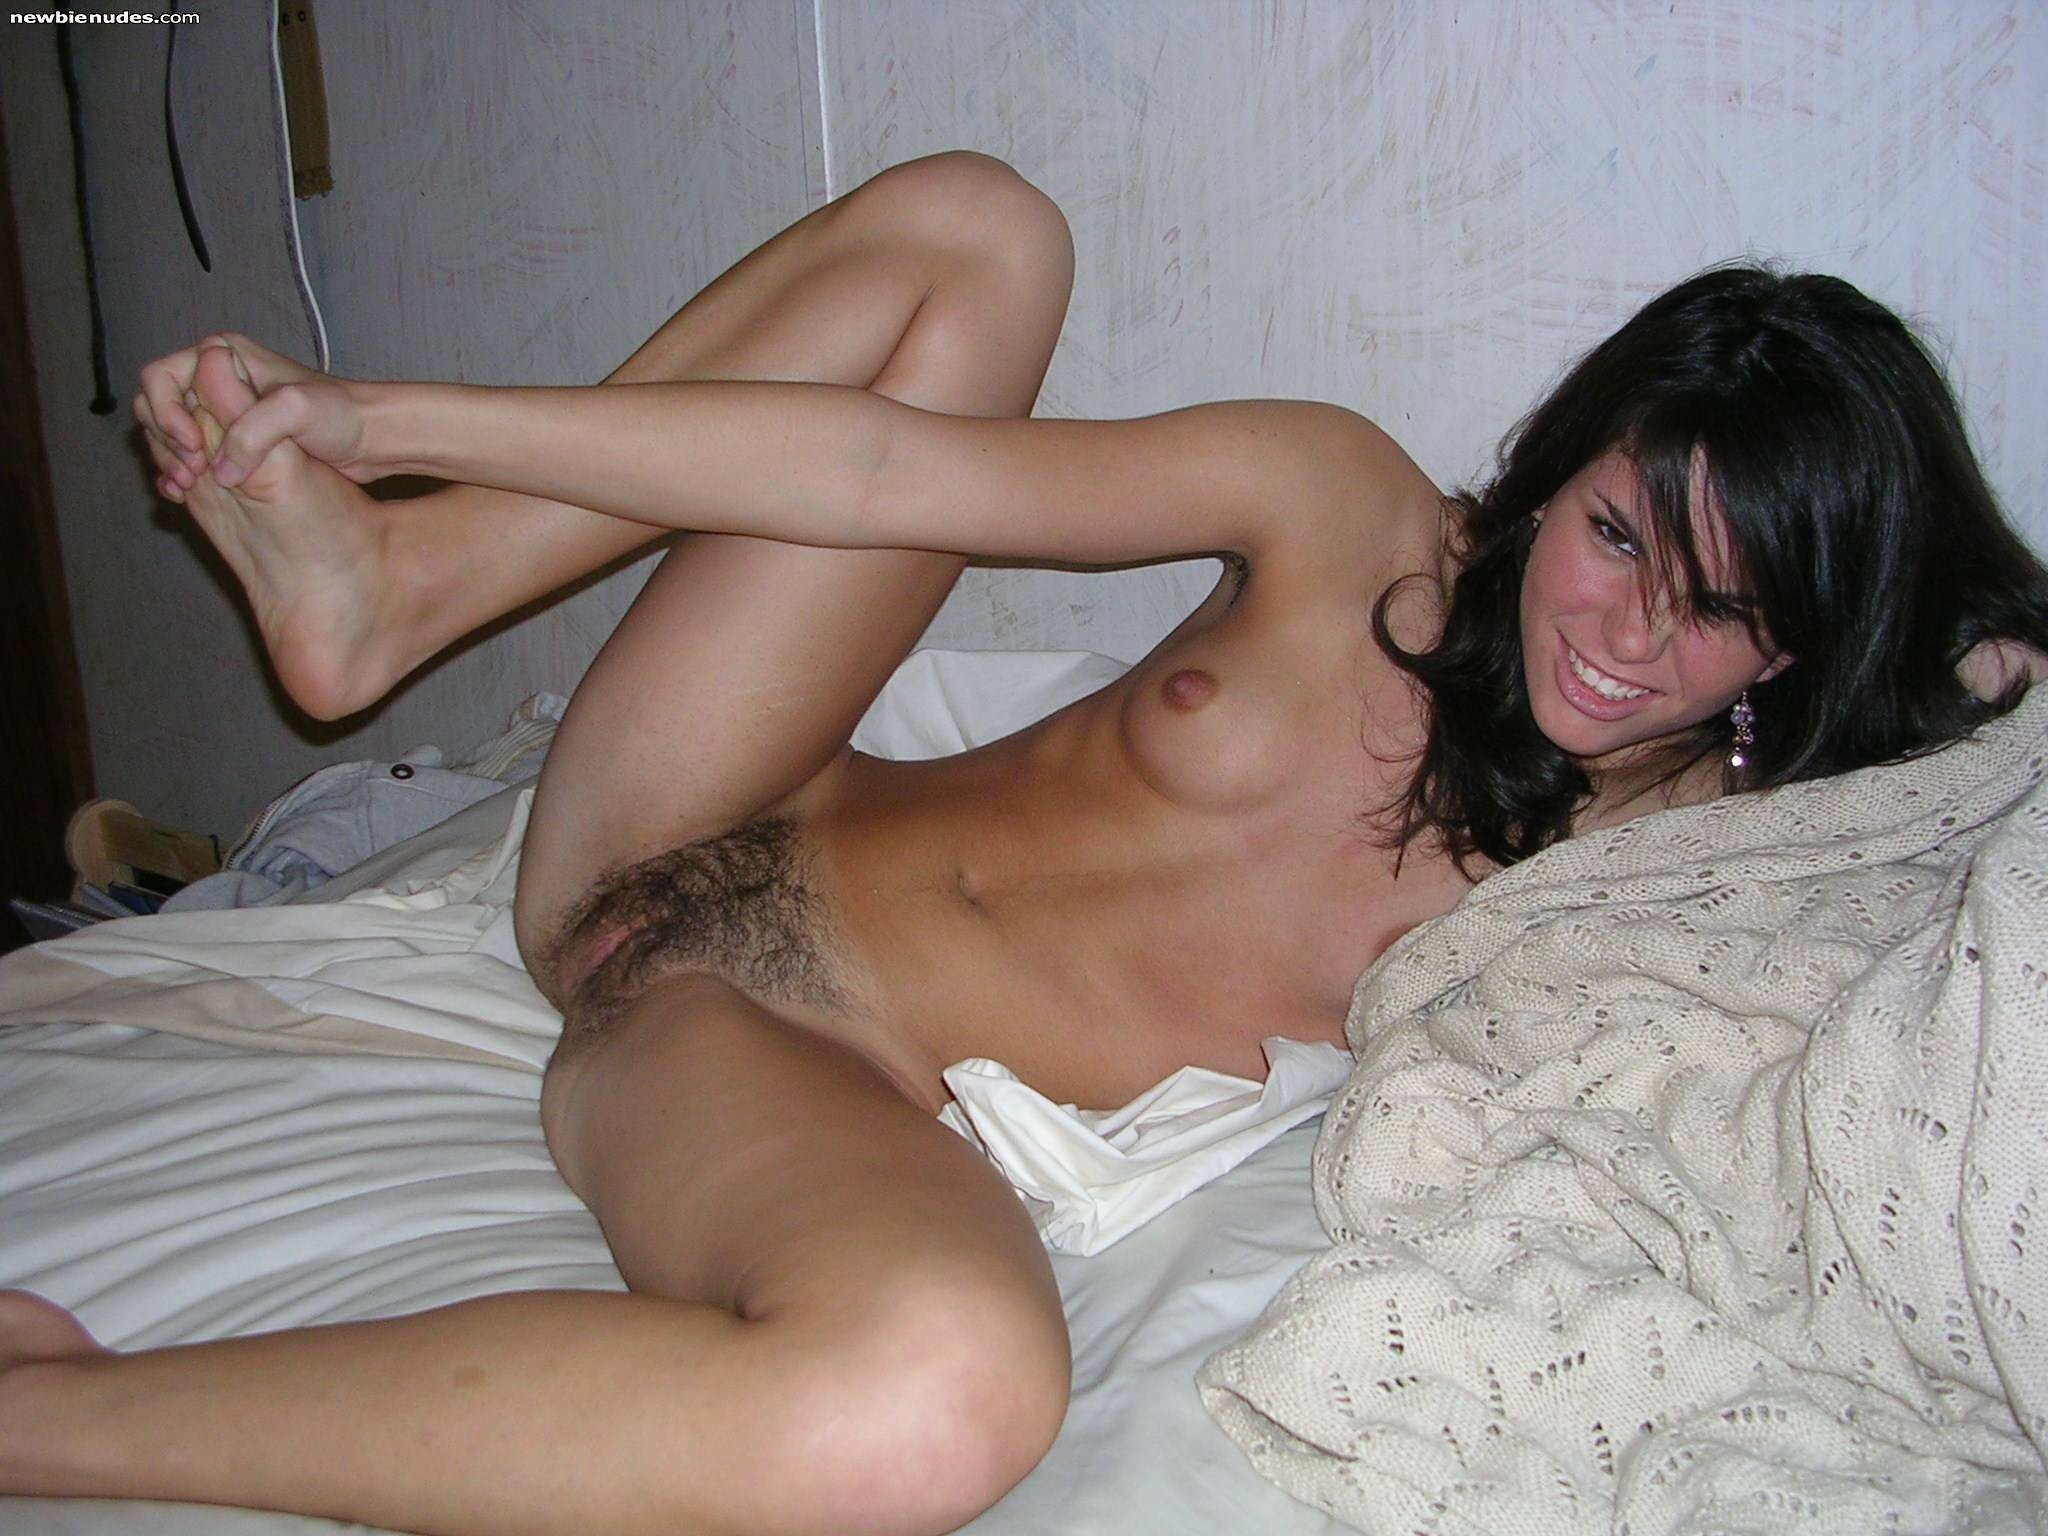 Young middle asian lady in the nude